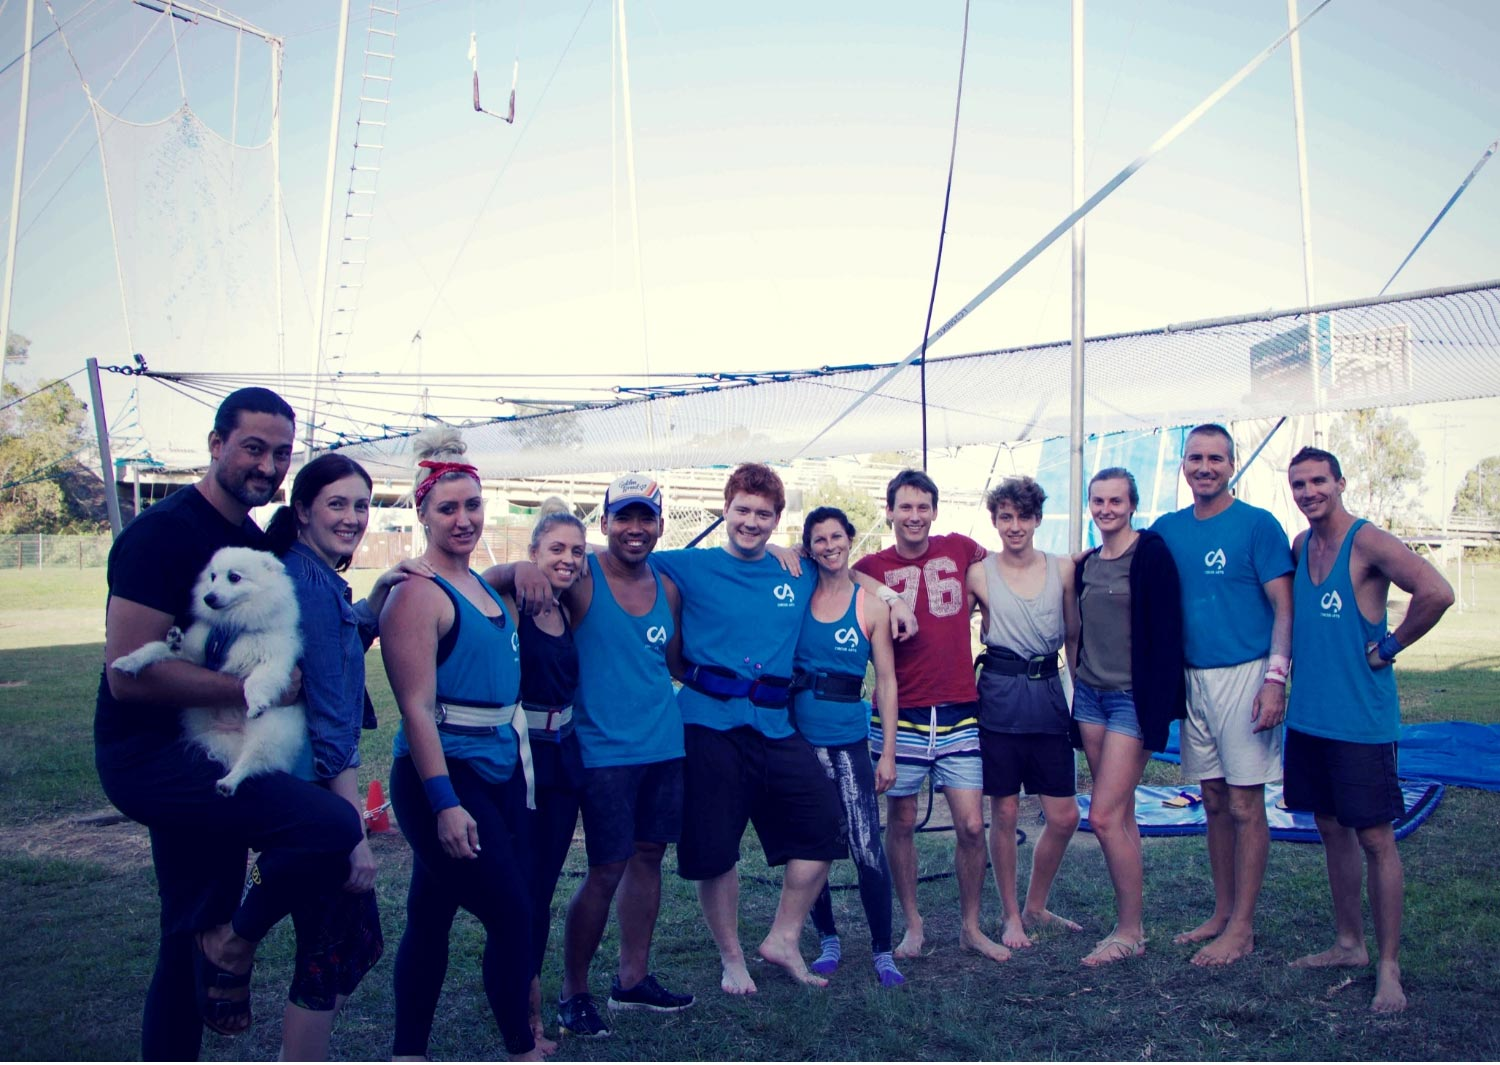 circus-arts-sydney-byron-bay-brisbane-flying-trapeze-circus-coach-career-job-opportunity-3